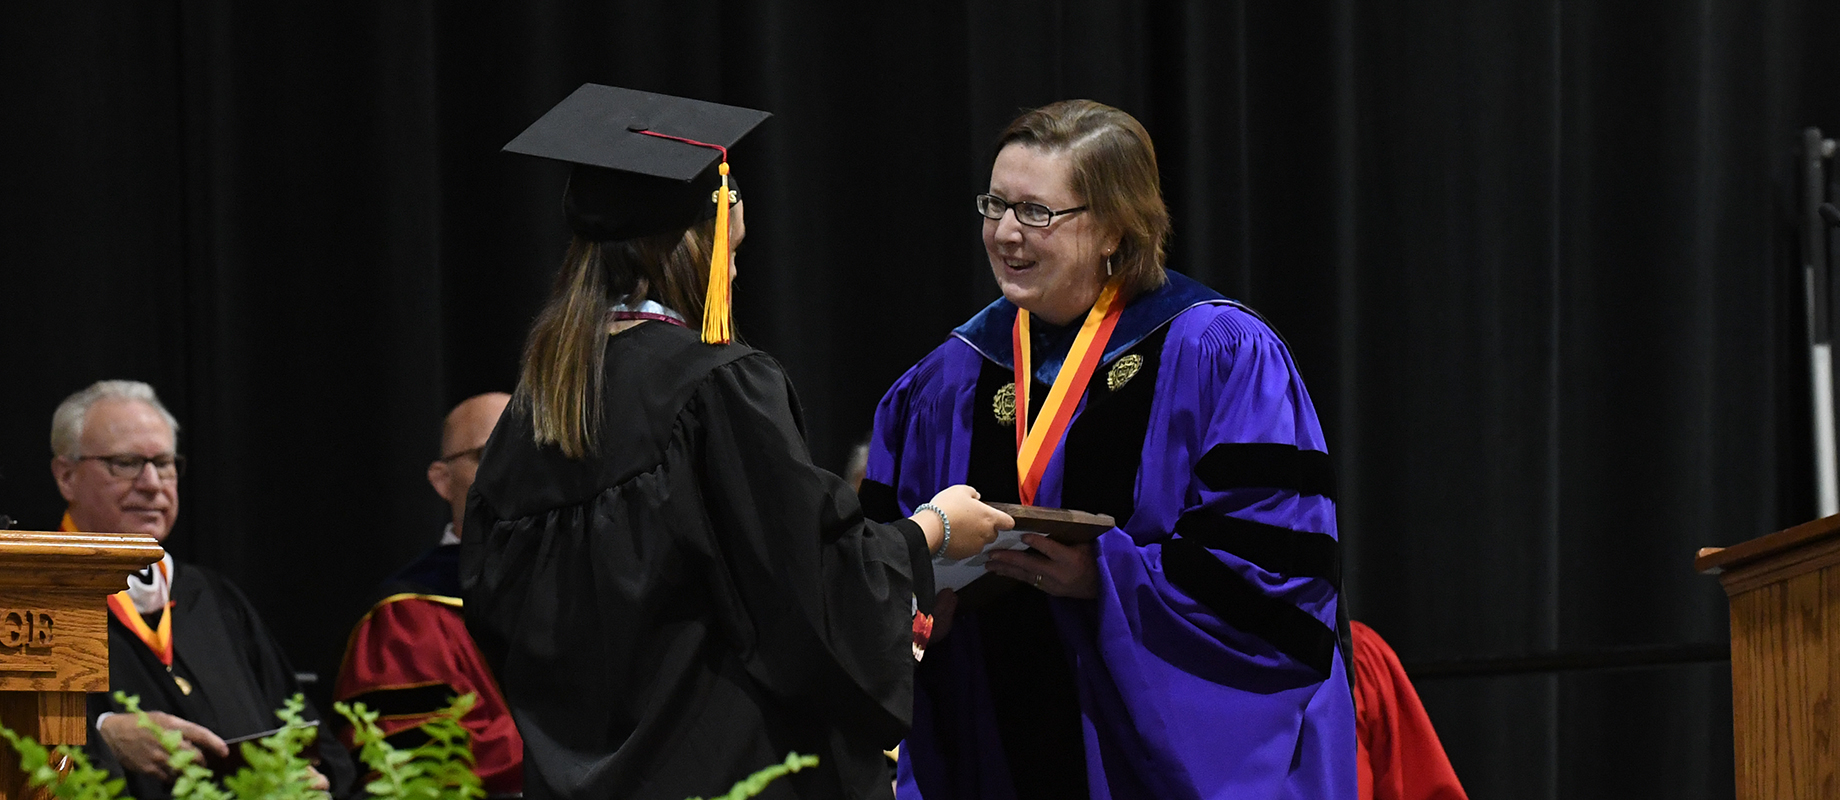 Judy Walden earned the Distinguished Teaching Award at the 2019 commencement ceremony.